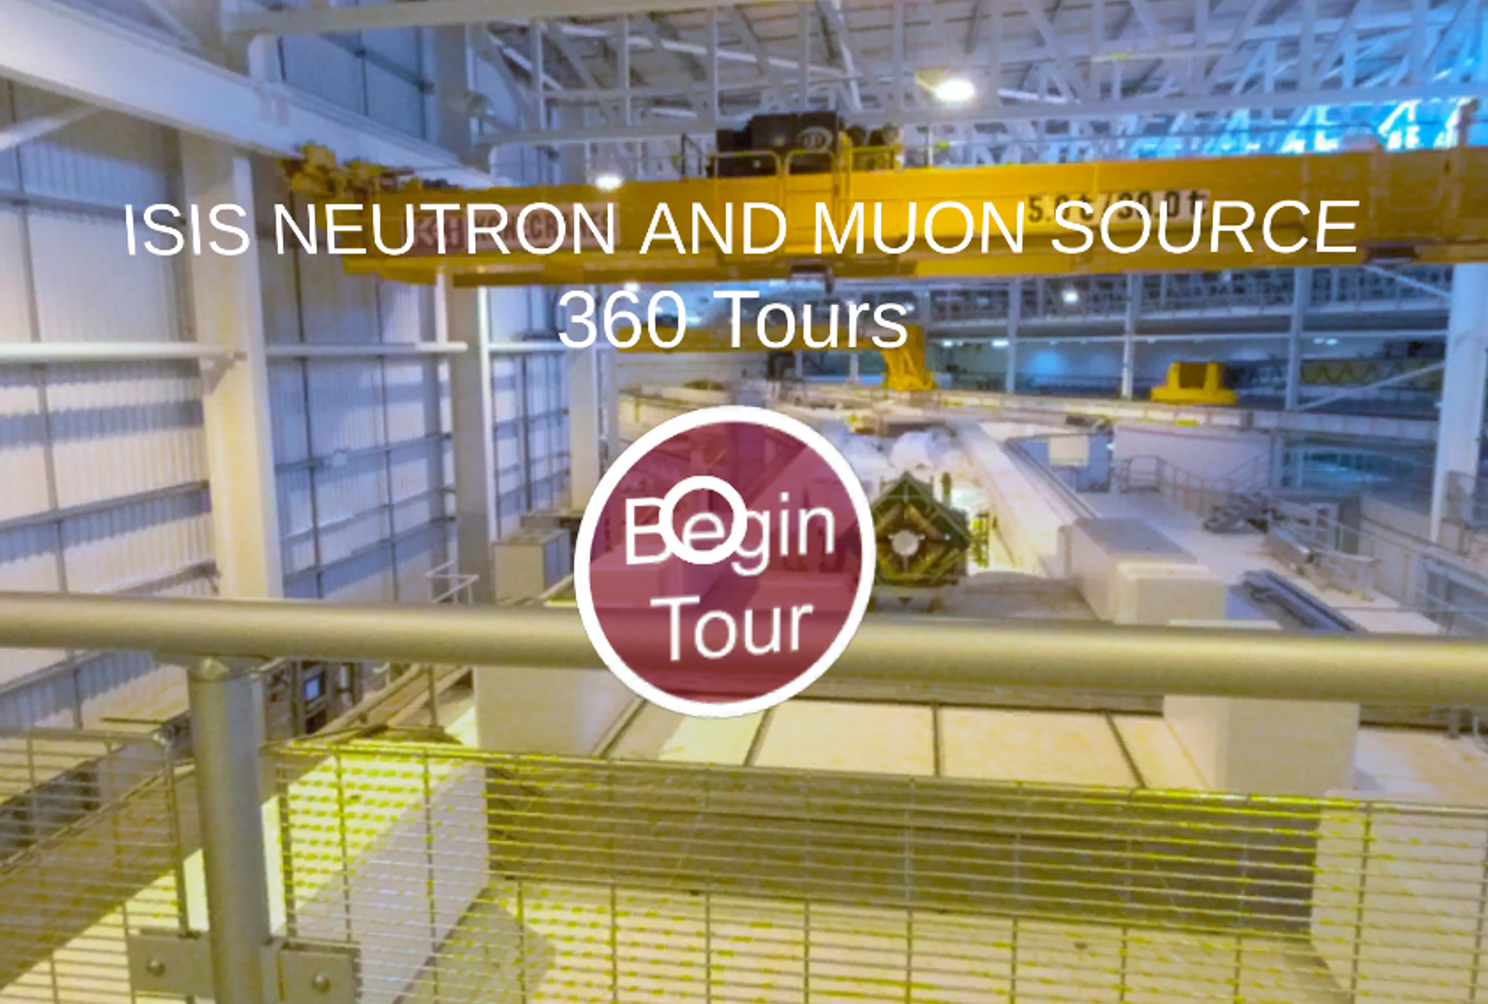 isis neutron and muon source 360 tour.png